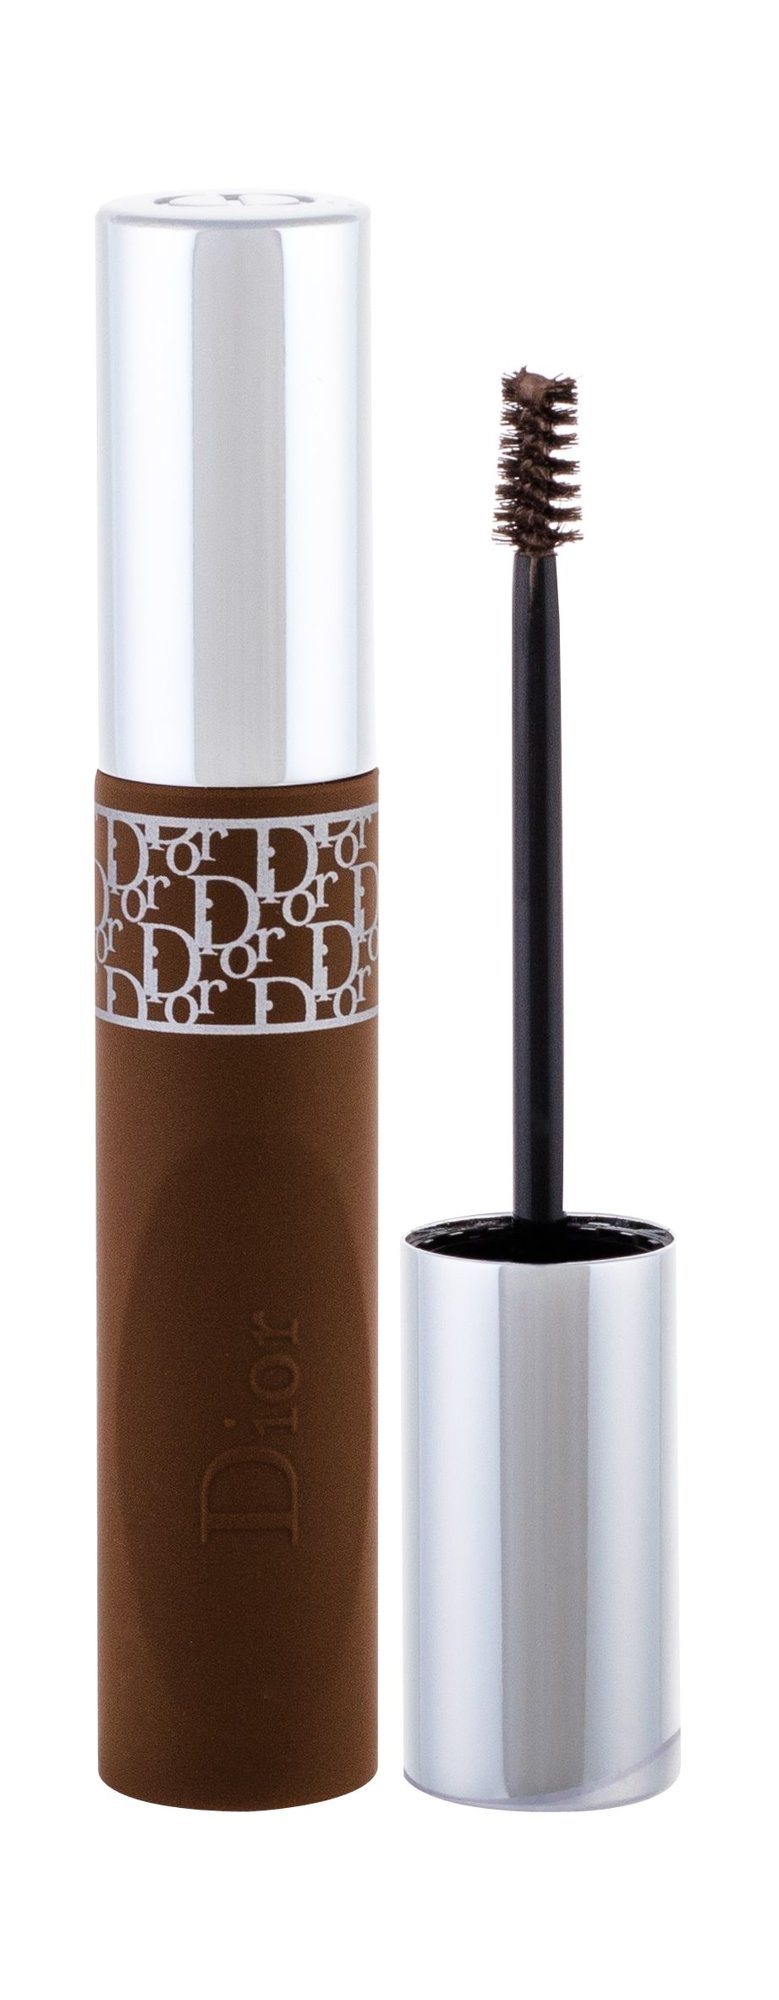 Christian Dior Diorshow Mascara 5ml 021 Chestnut